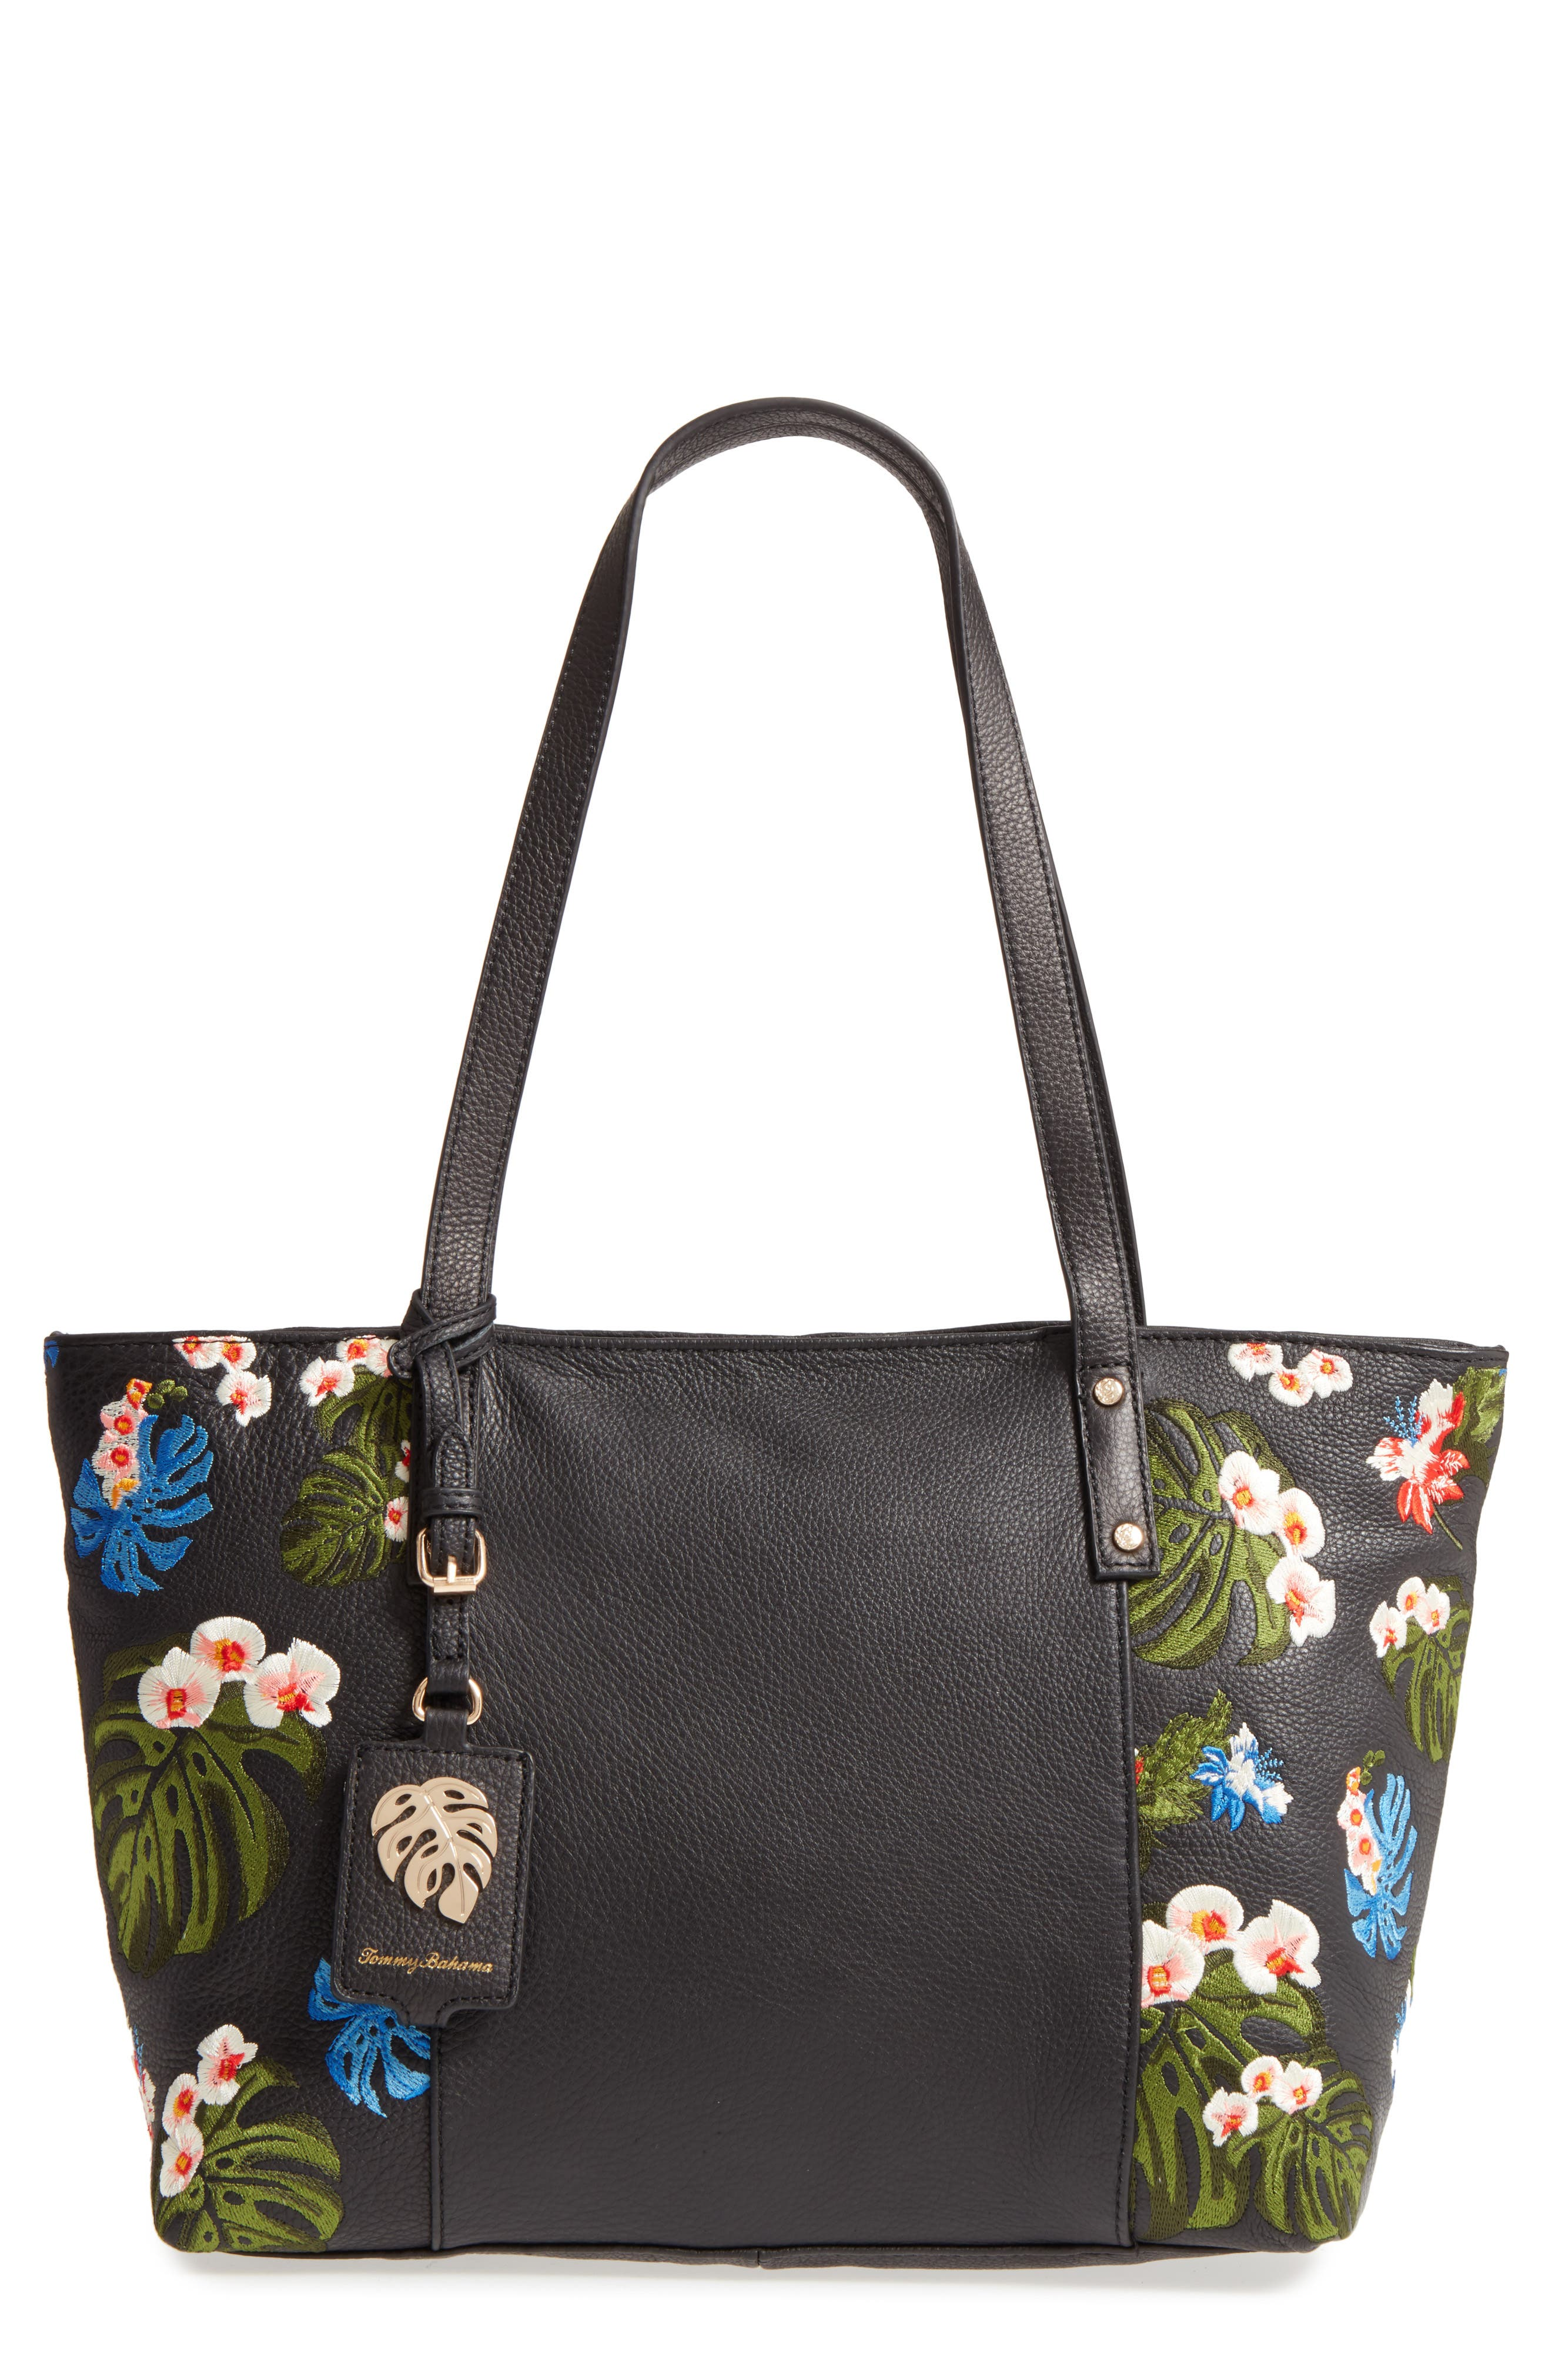 Cozumel Floral Embroidered Leather Tote,                         Main,                         color, 001